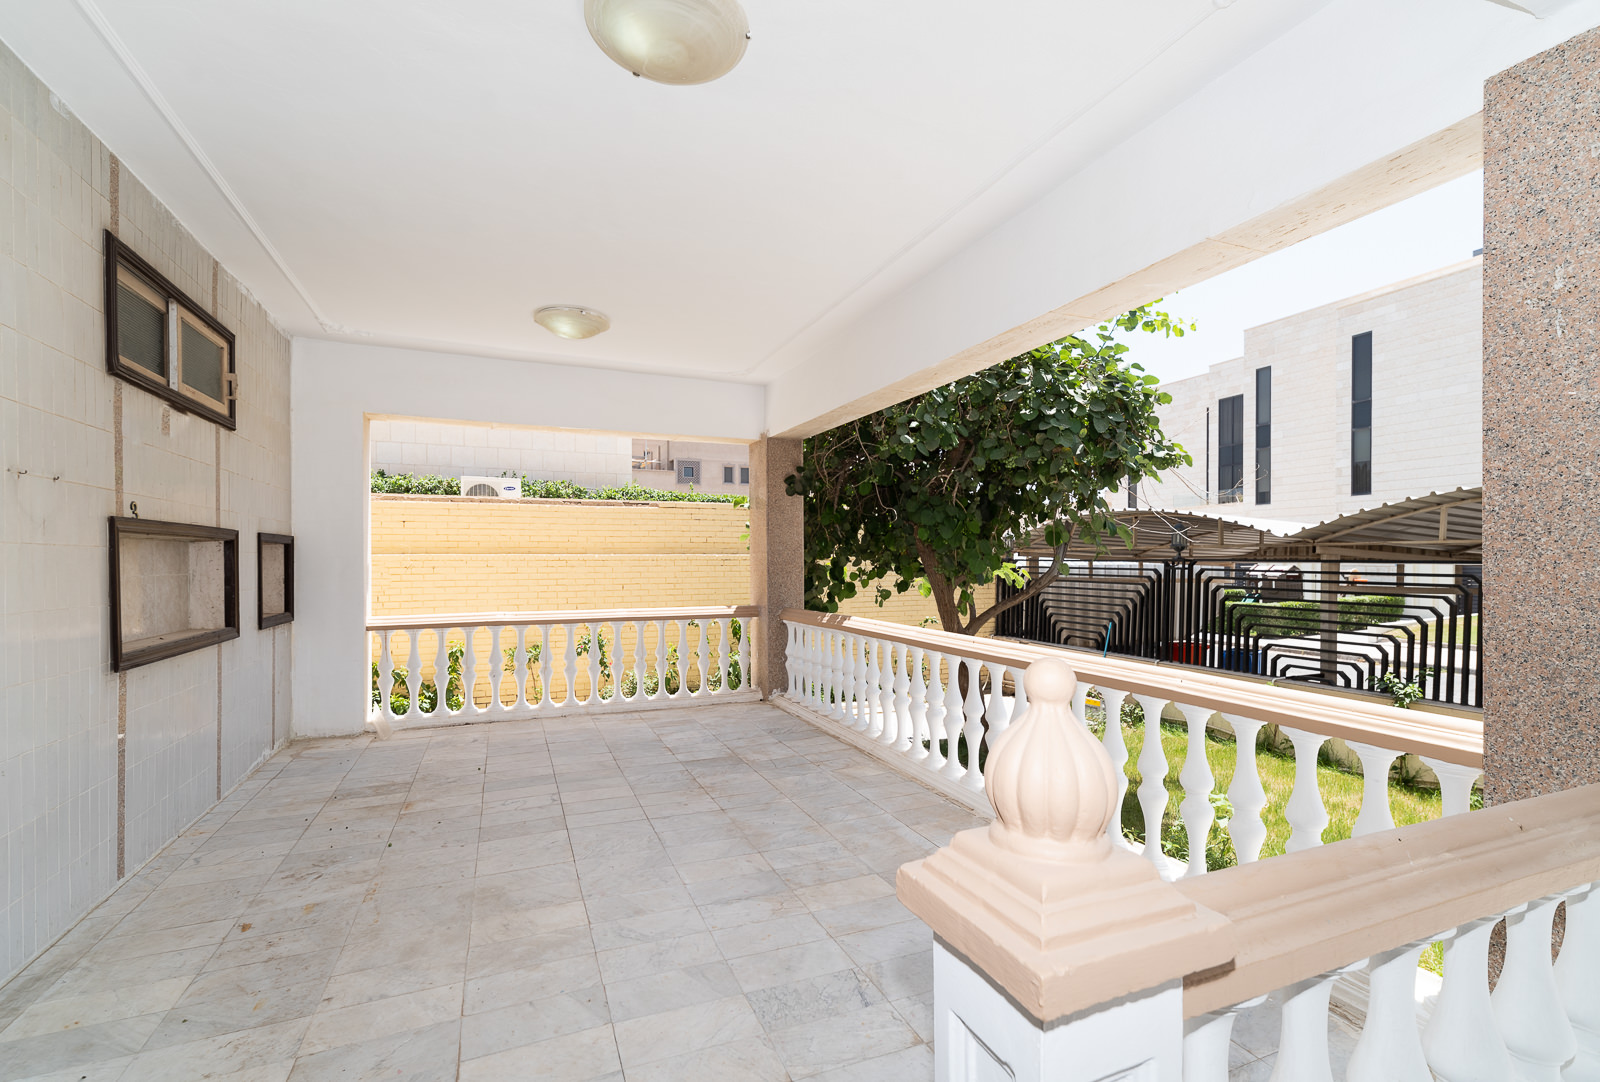 Rawda – older, spacious villa with garden